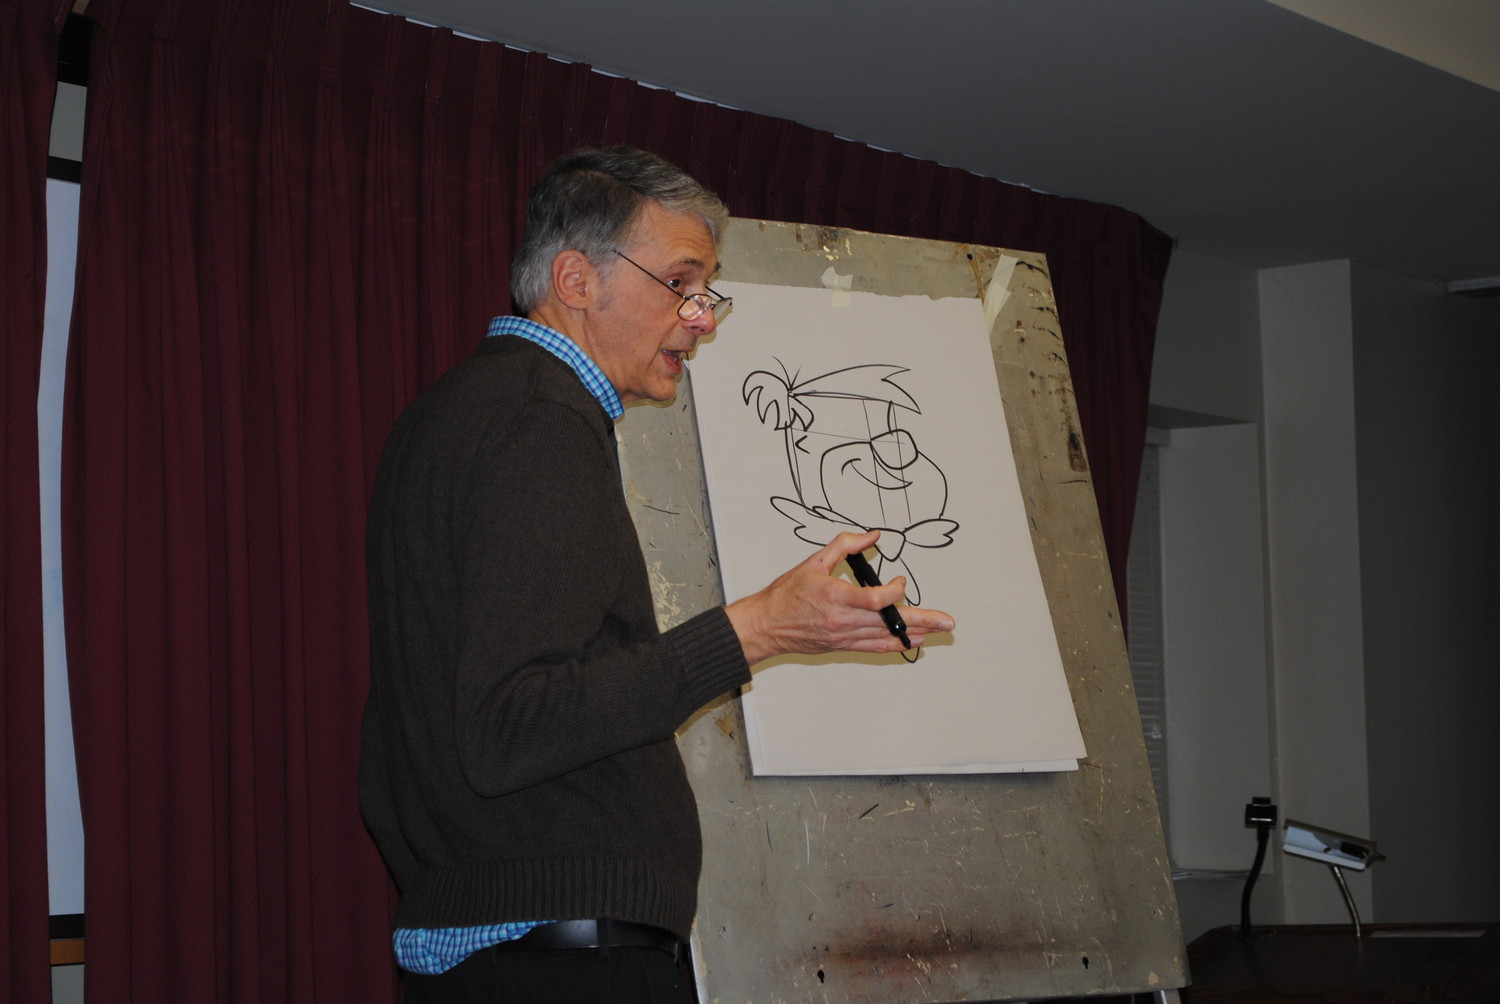 Ed Klein gave each of his drawings out to the students in his class.